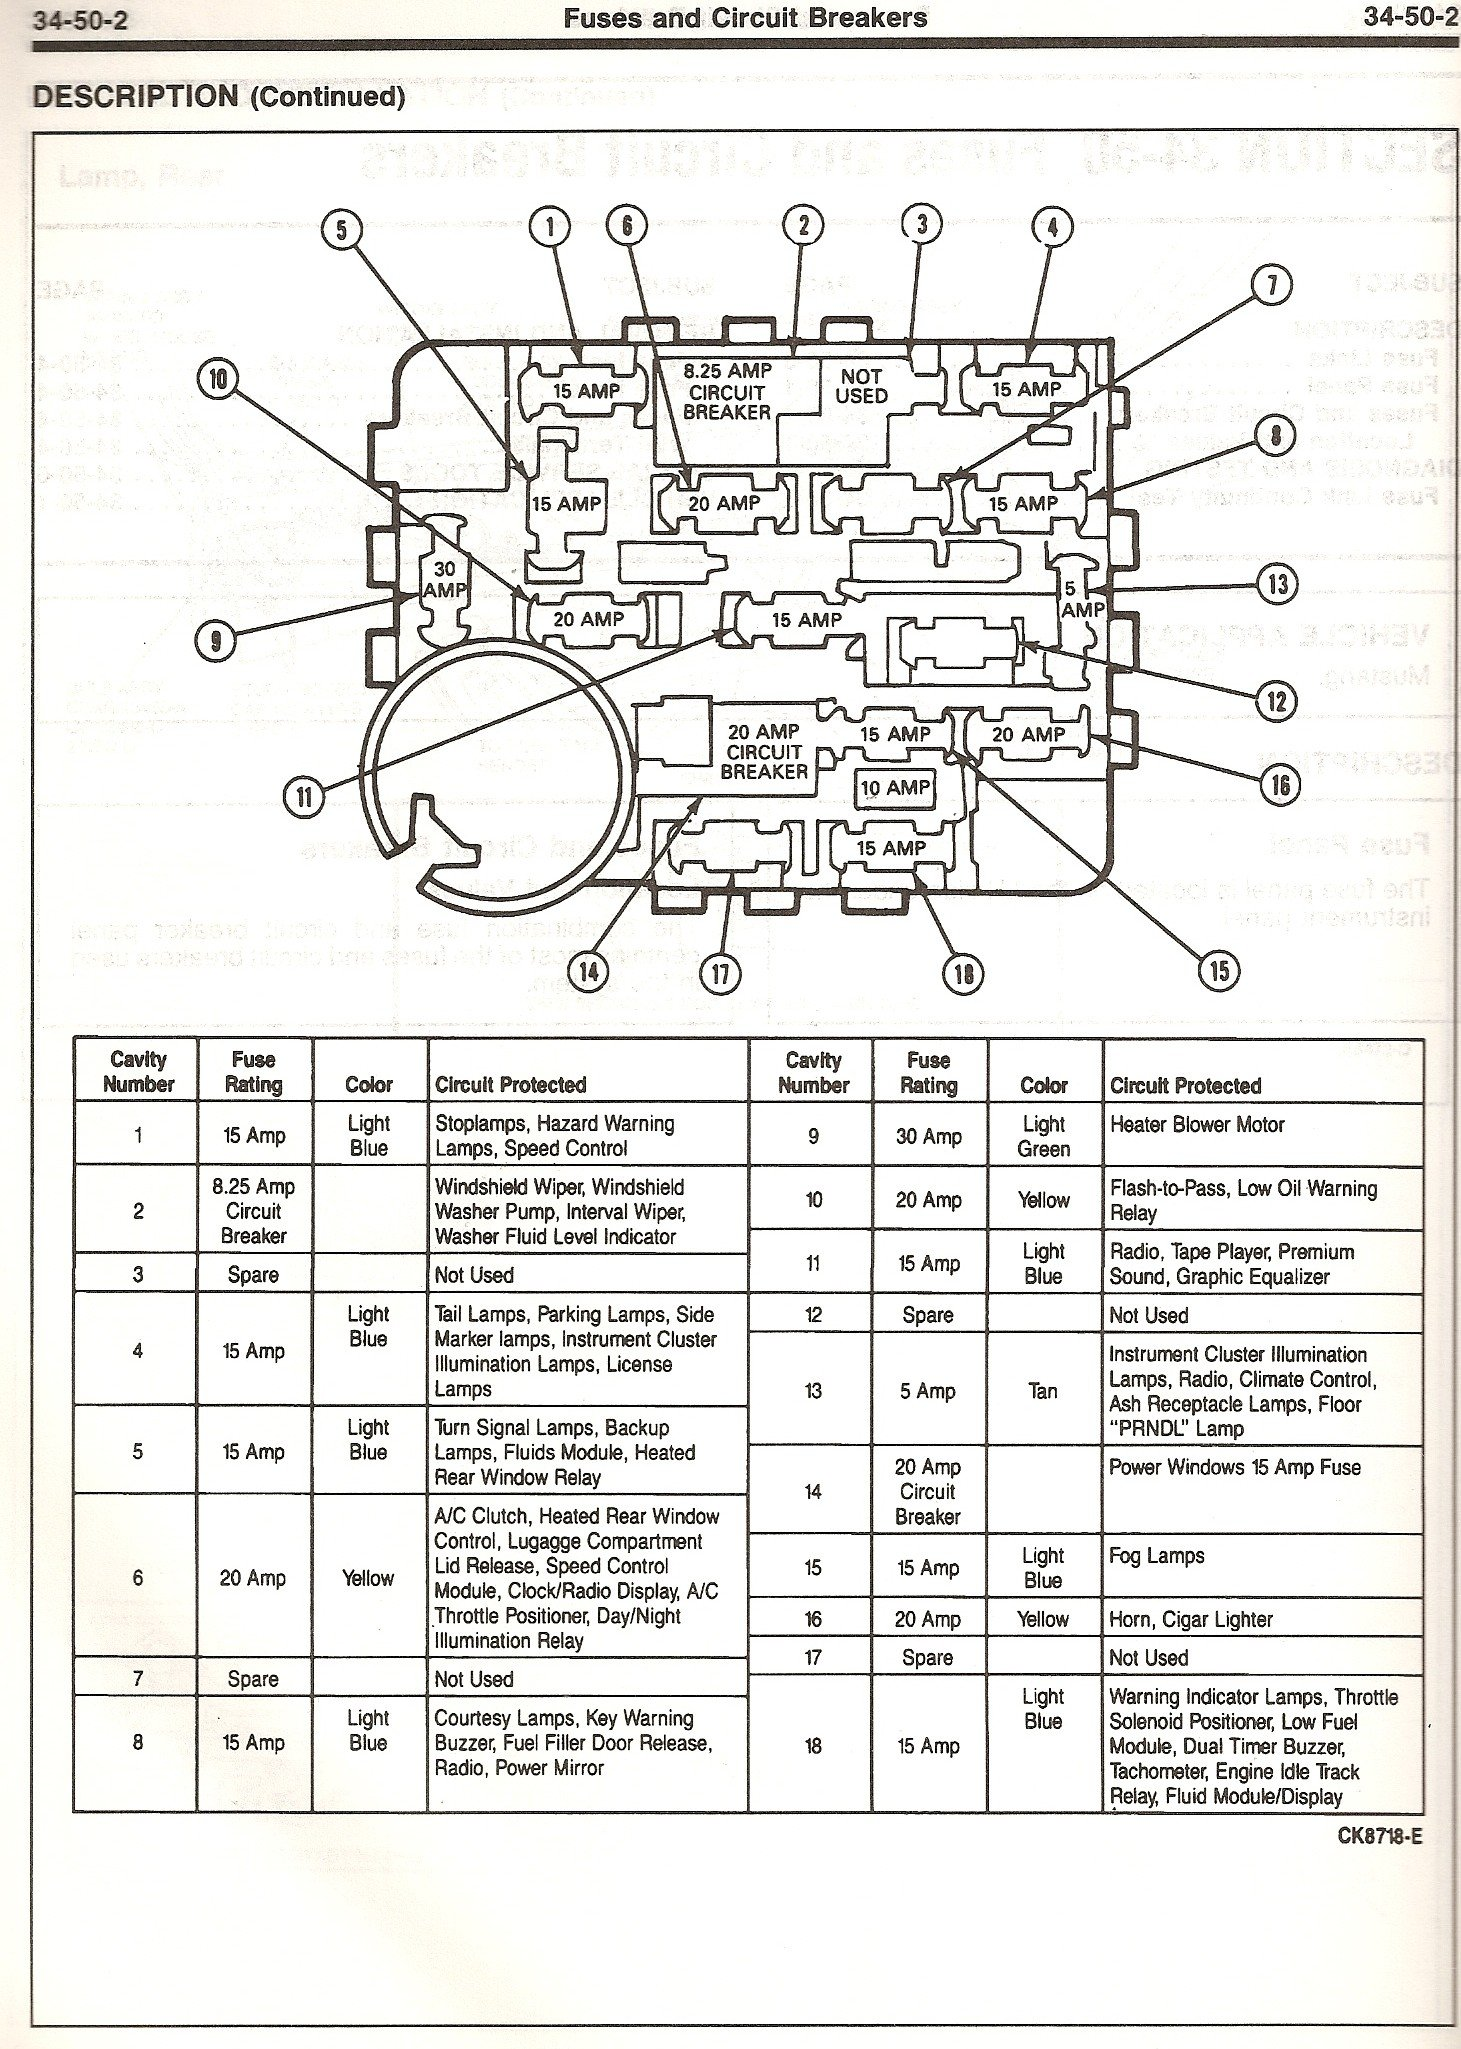 ford mustang fuse box diagram wiring schematics diagram 99 mercury grand marquis fuse diagram ford mustang fuse box schematics wiring diagram 2010 ford mustang fuse box diagram 93 mustang fuse